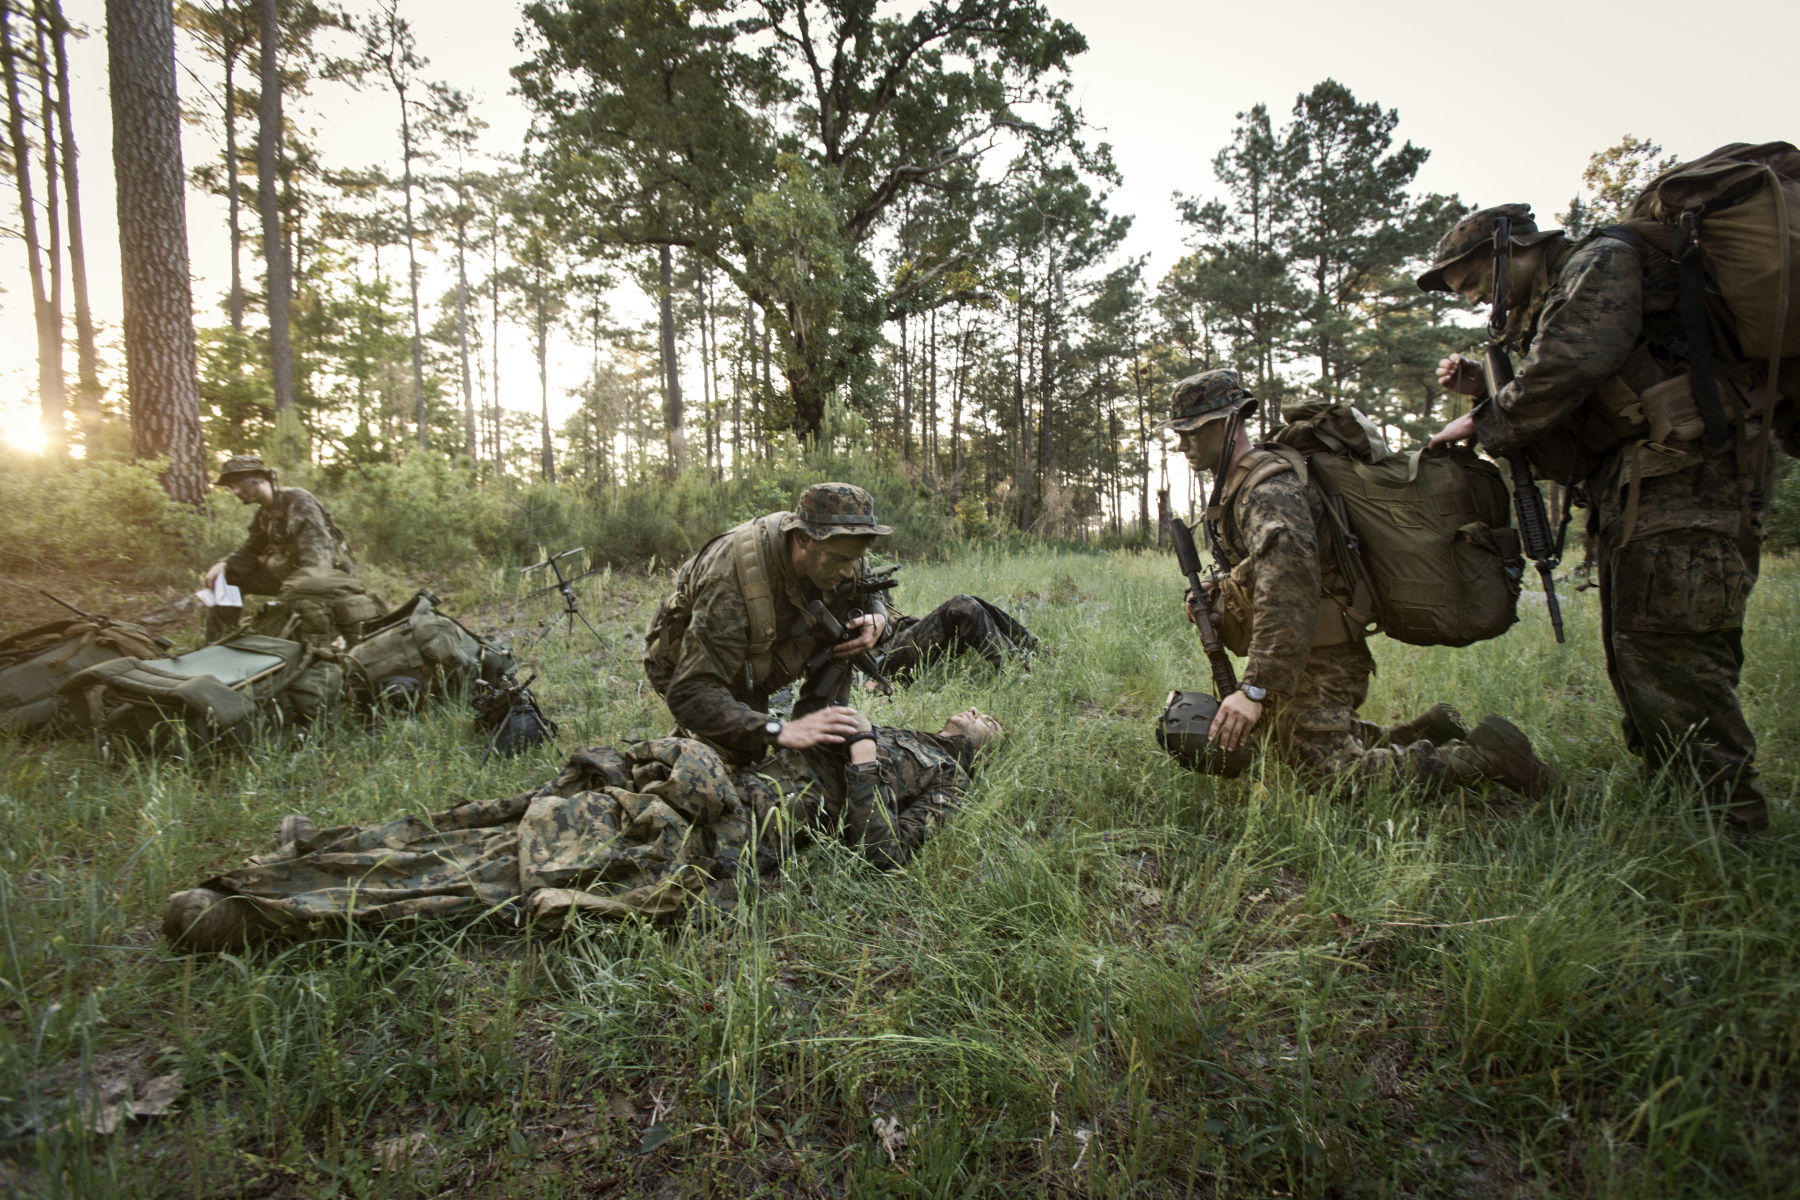 How To Attend to A Dead Marine | Vance Jacobs Photographer